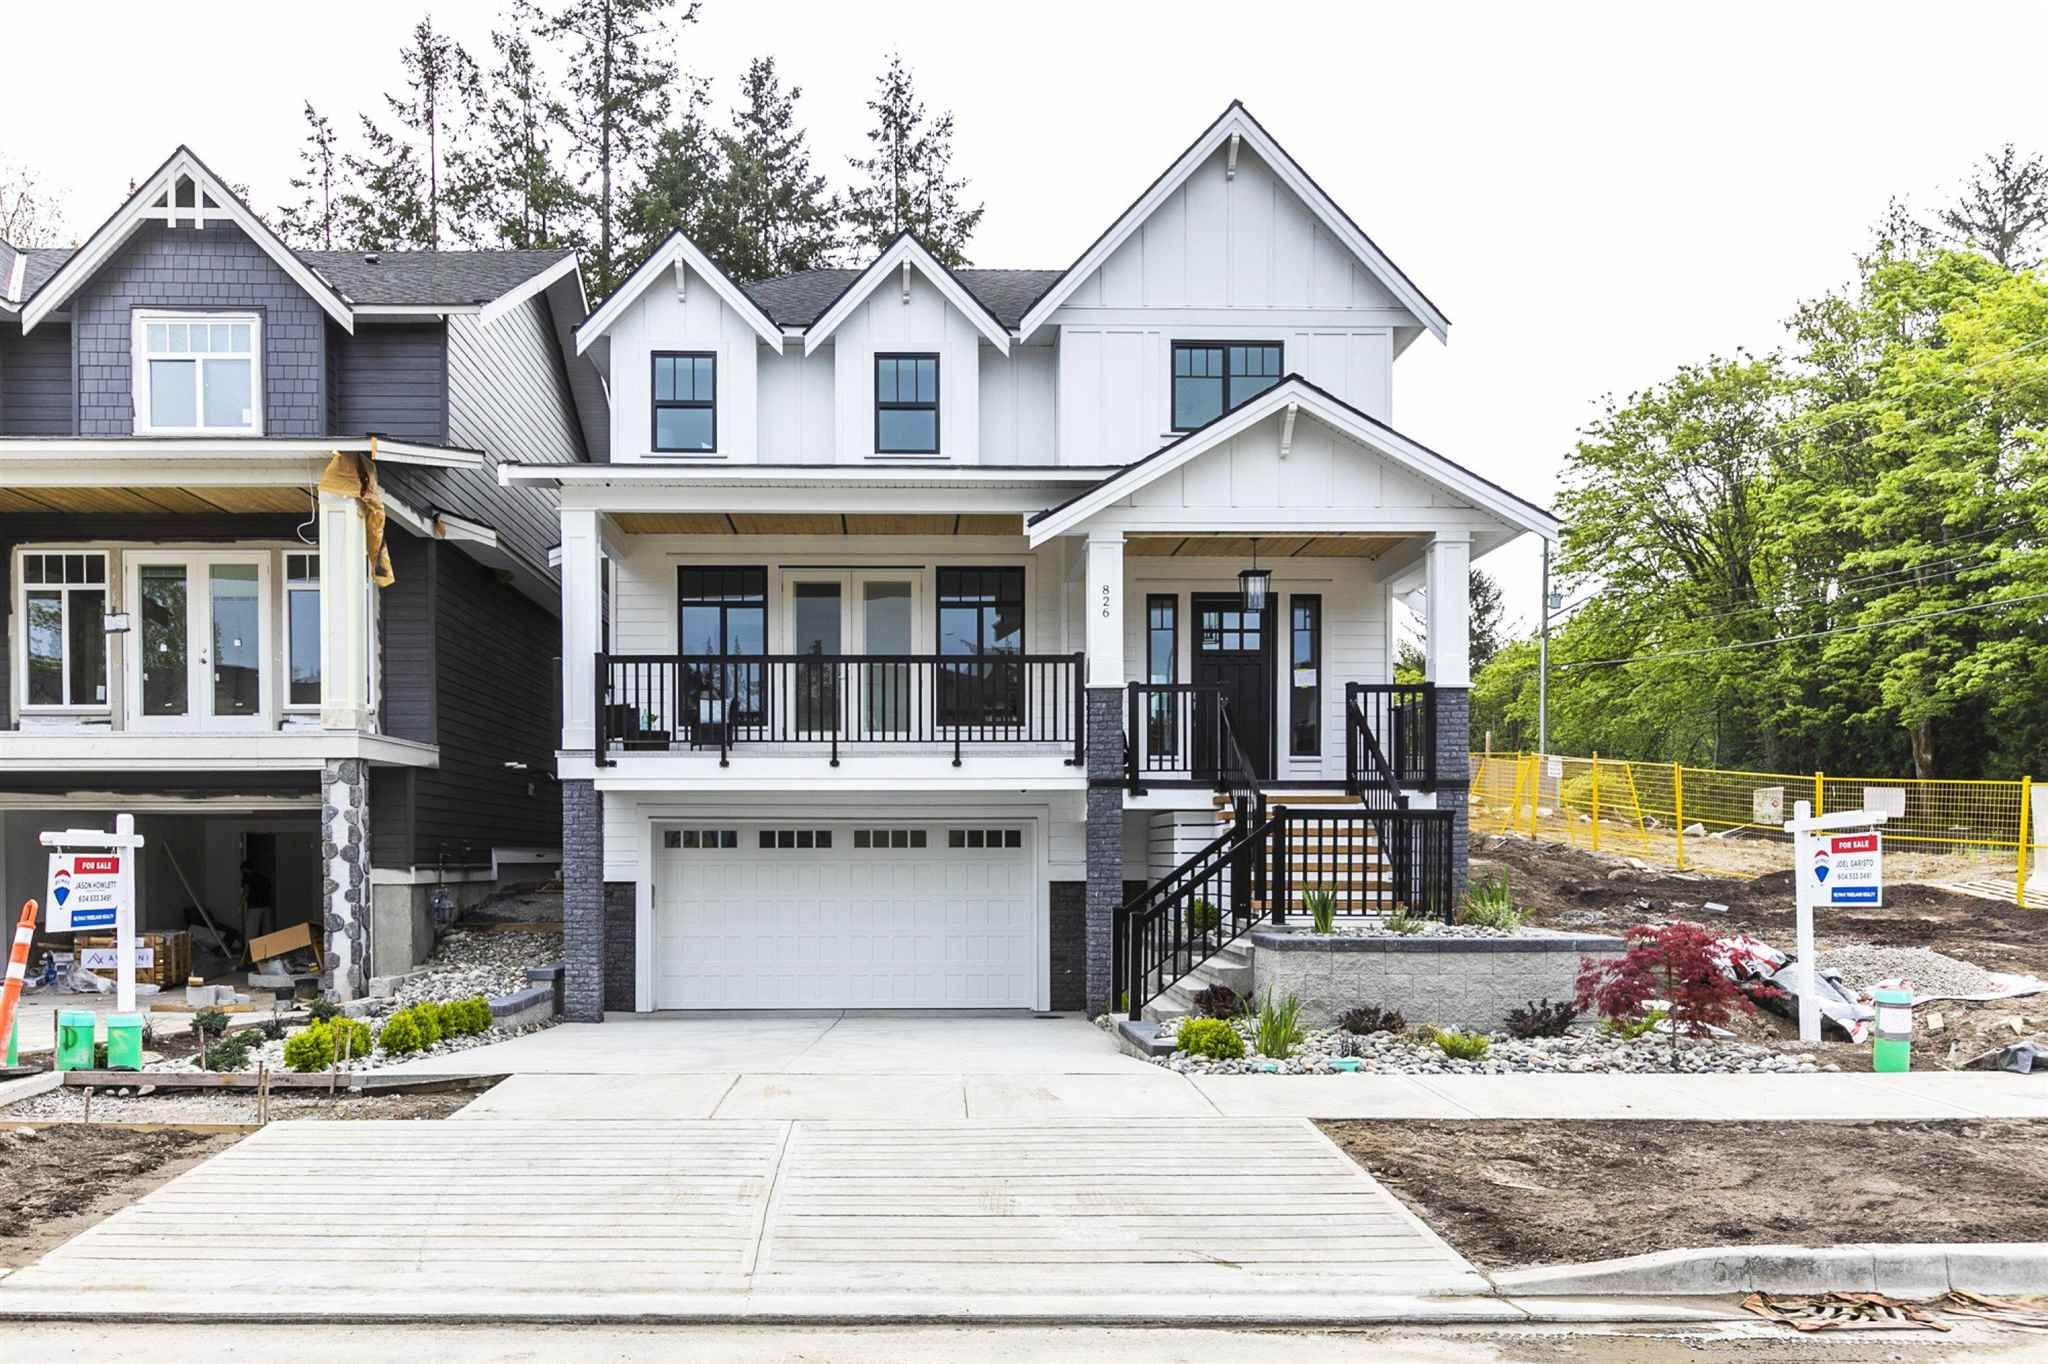 """Main Photo: 866 163A Street in Surrey: King George Corridor House for sale in """"East Beach"""" (South Surrey White Rock)  : MLS®# R2599557"""